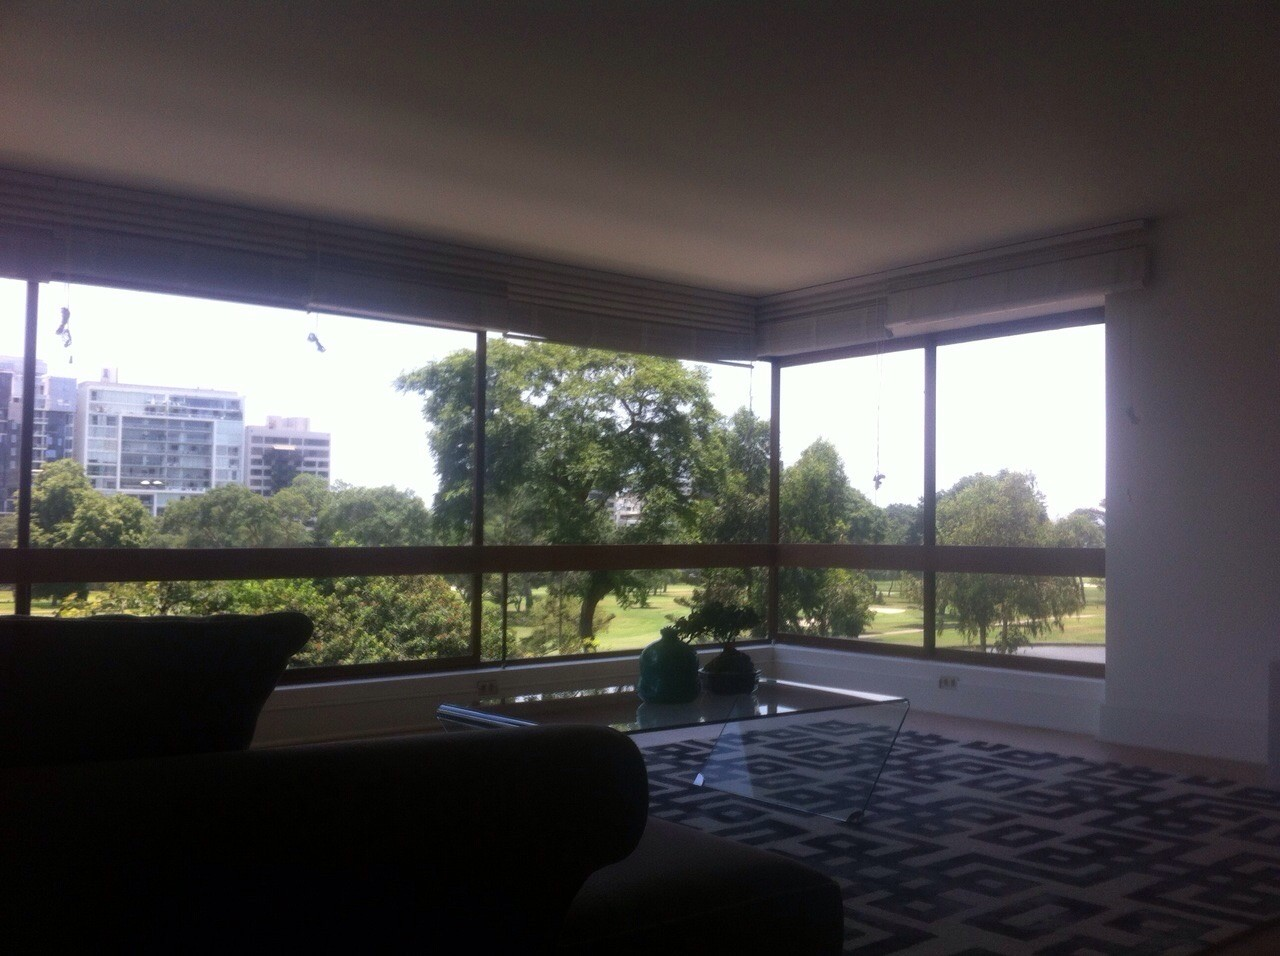 4-bedroom apartment for rent in Lima